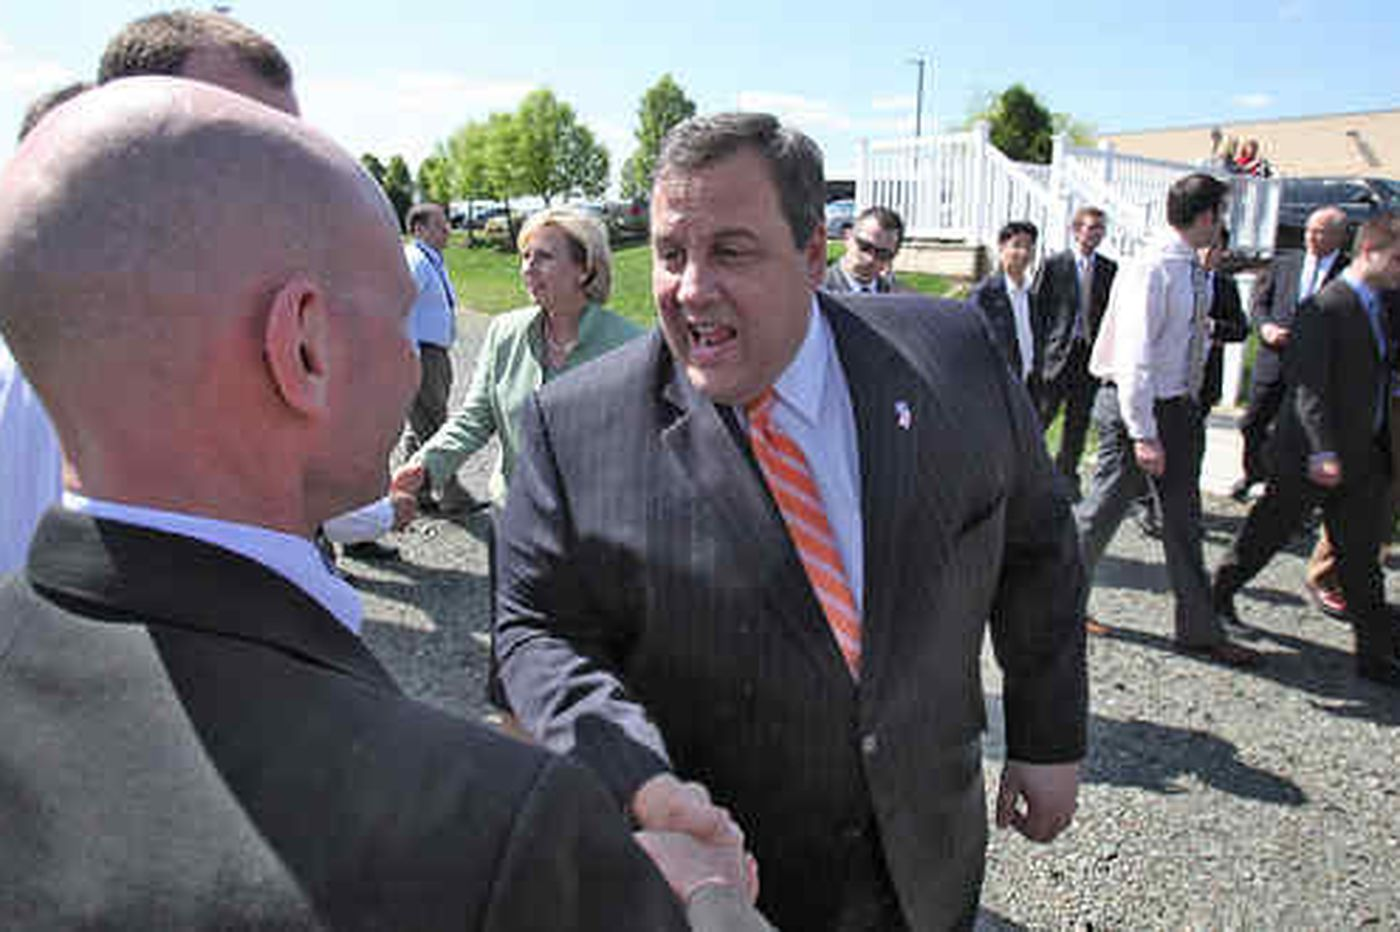 In Phila., Christie promotes N.J. businesses